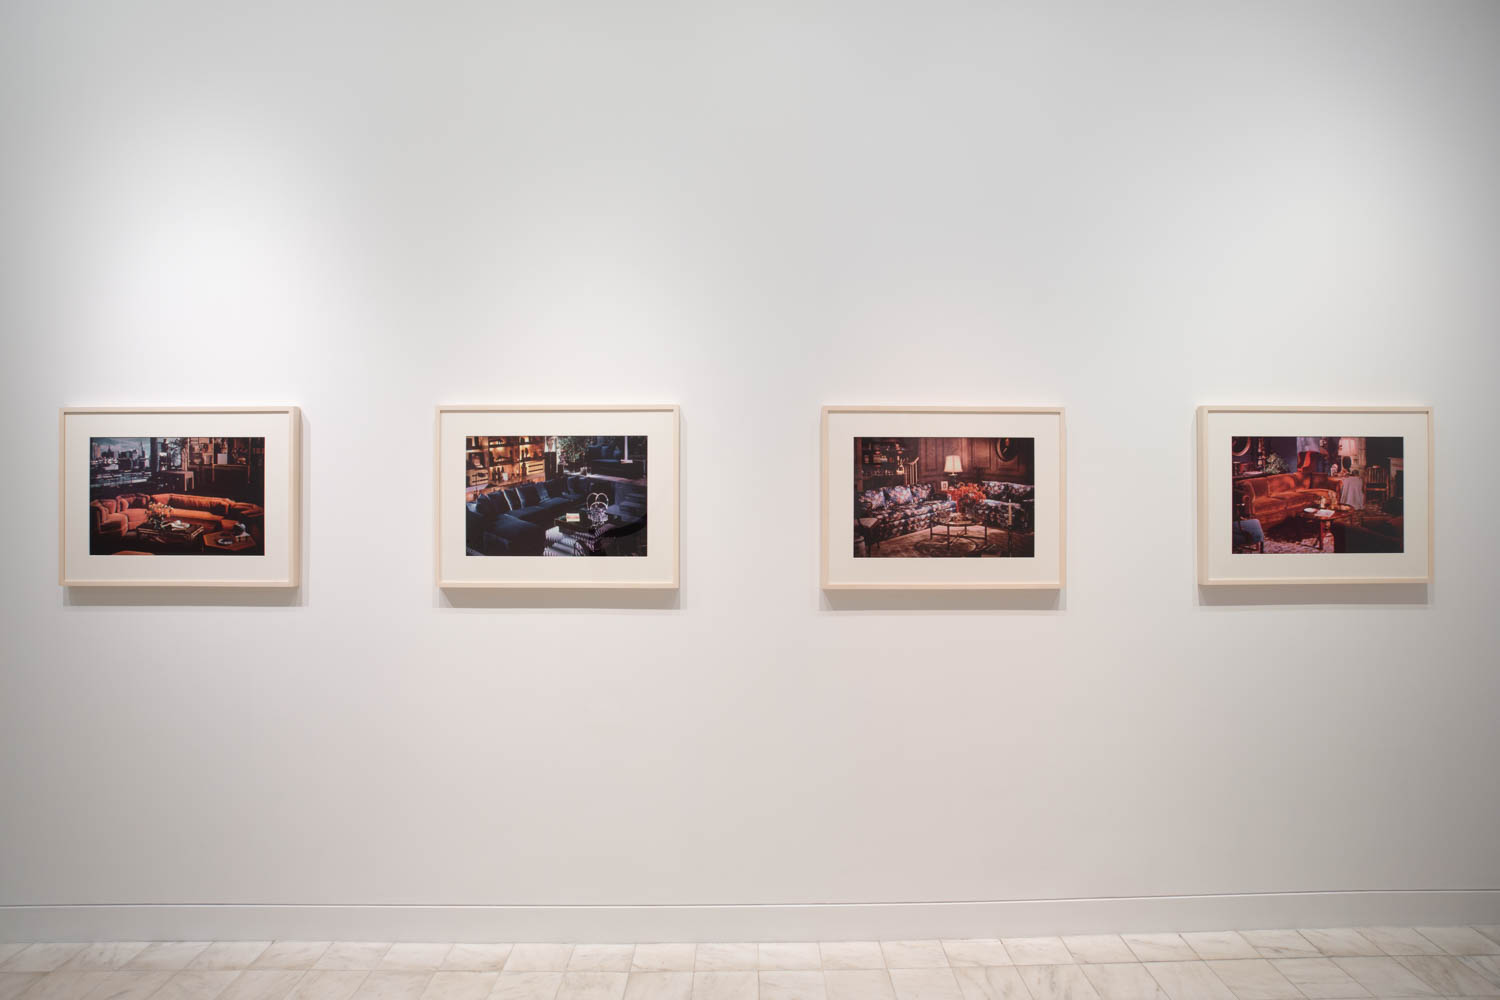 Richard Prince<div><i>Untitled (Living rooms), </i>1977</div><div>Four ektacolor photographs</div><div>20 x 24 inches each(50.8 x 61 cm each)</div>